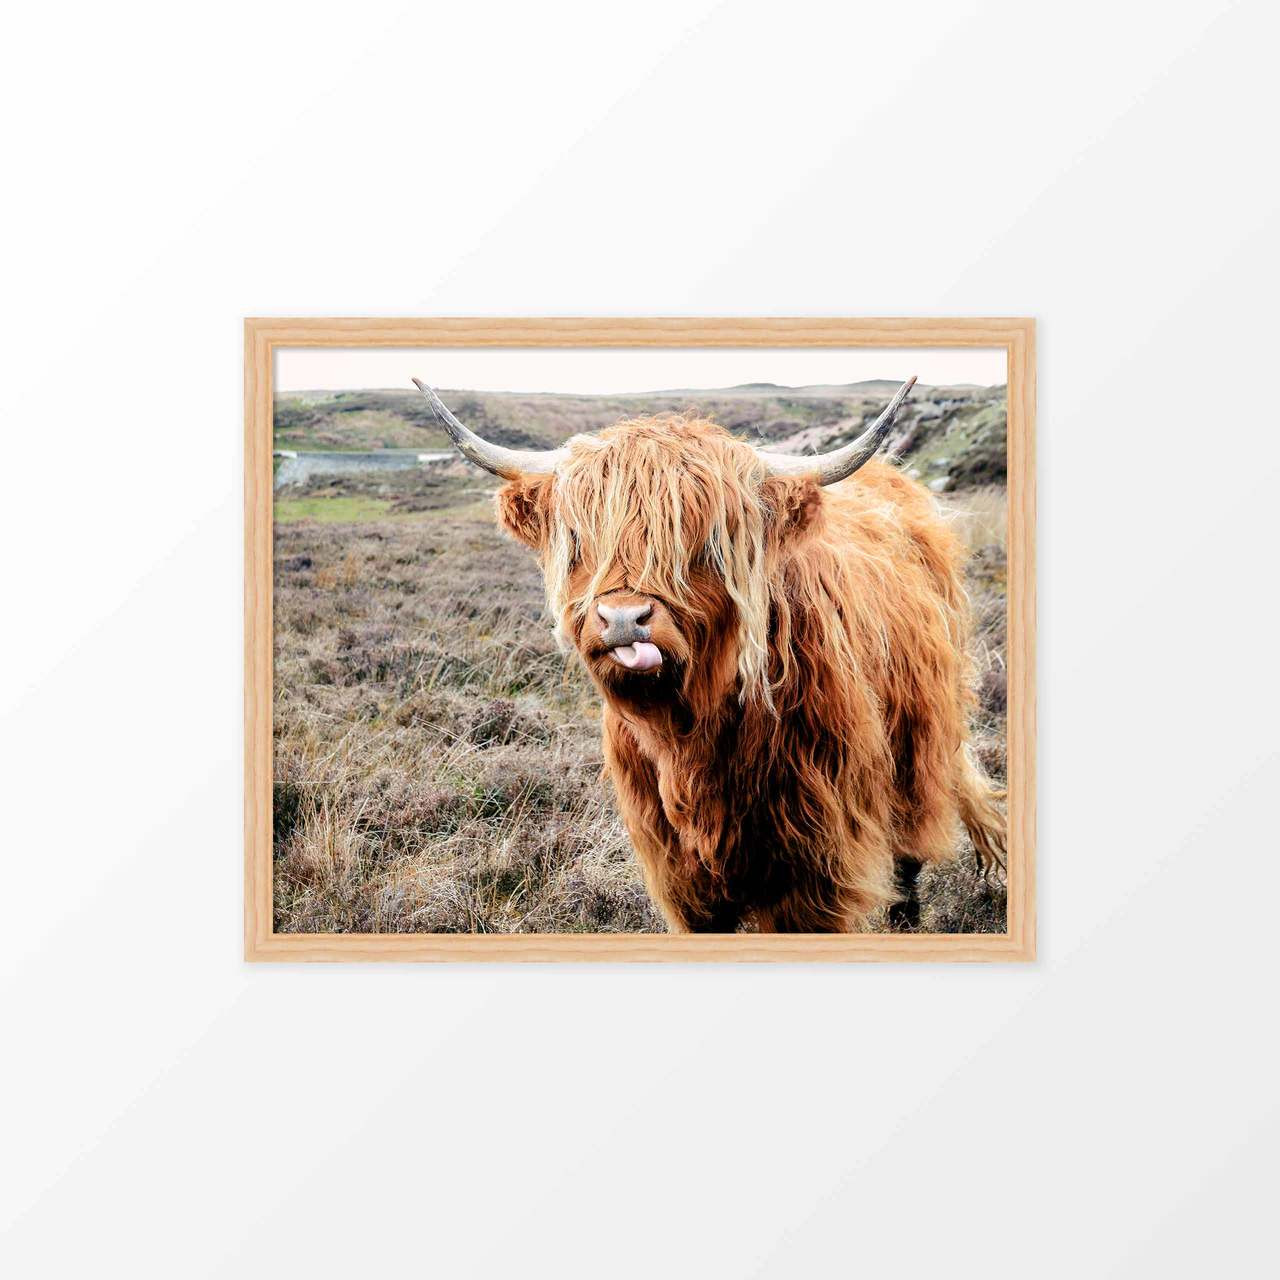 'Highland Cow' Photography Poster from The Printed Home